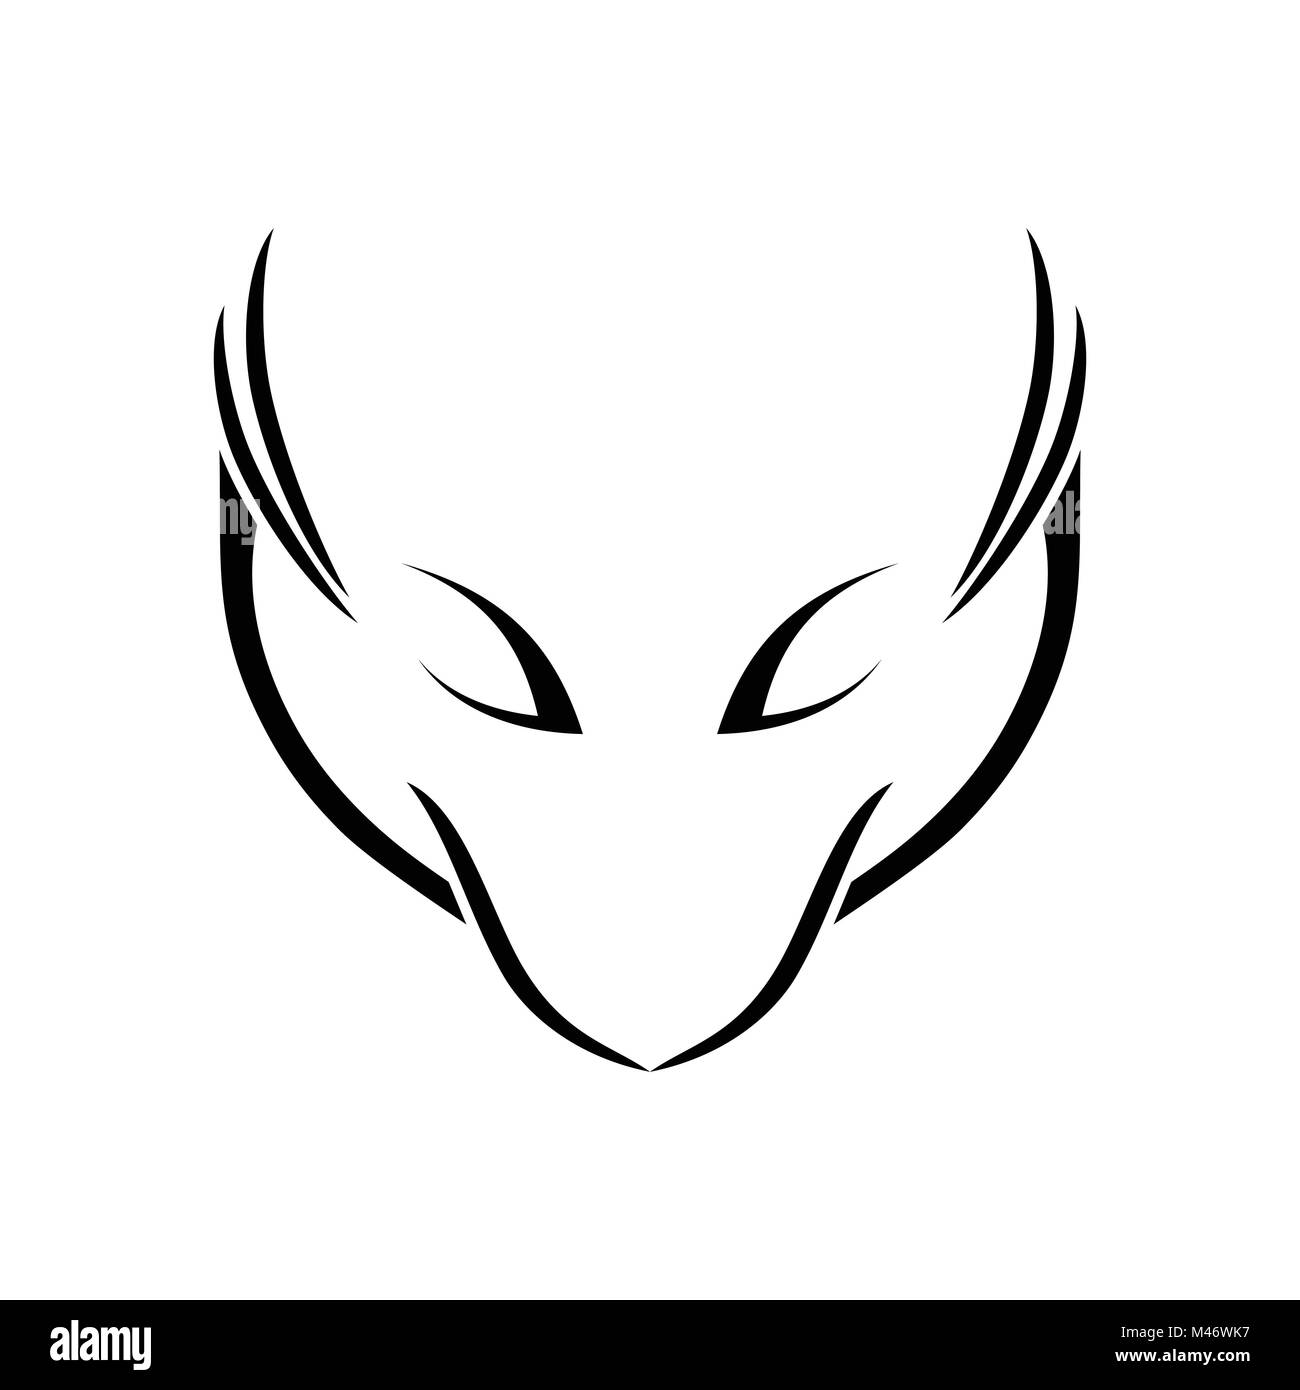 Abstract Fox Art Icon Symbol Myth Stock Photos And Icon Symbol Myth Stock